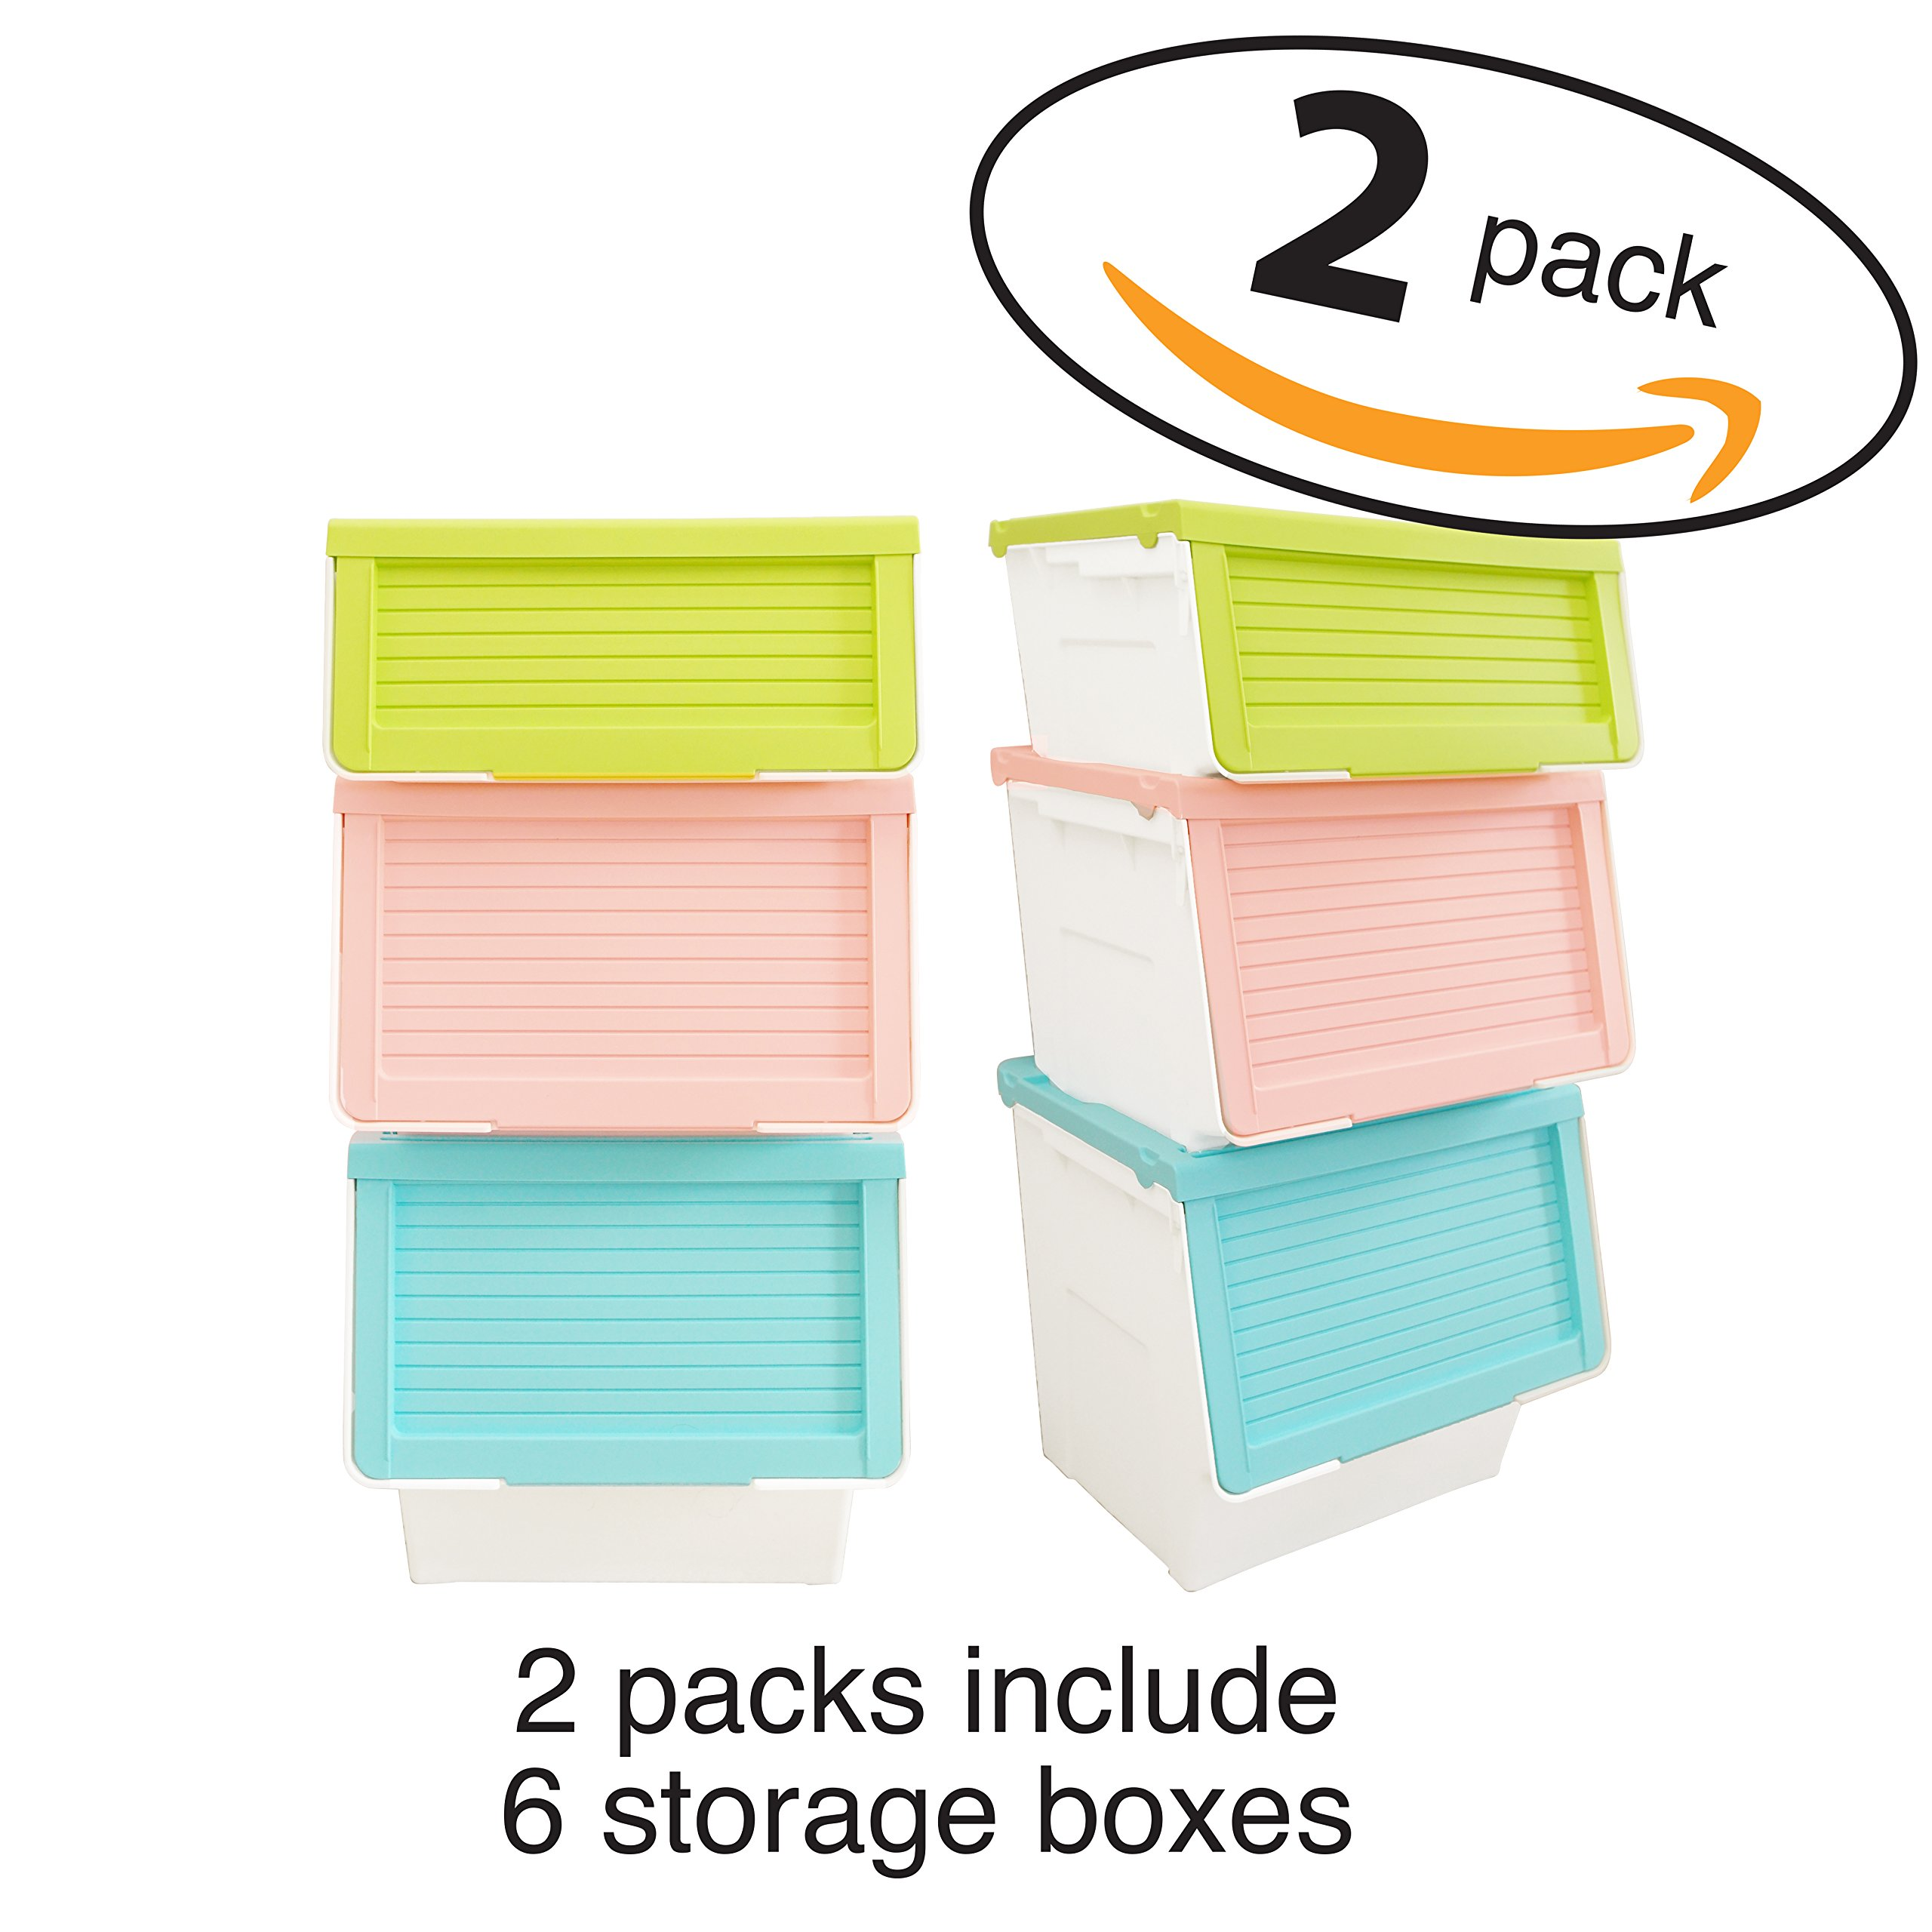 LuxorWare 3 Piece Storage Bins home Organizer for Kids Toys, Clothes & Kitchen food (Green(S), Blue(M), Pink(L)x2)